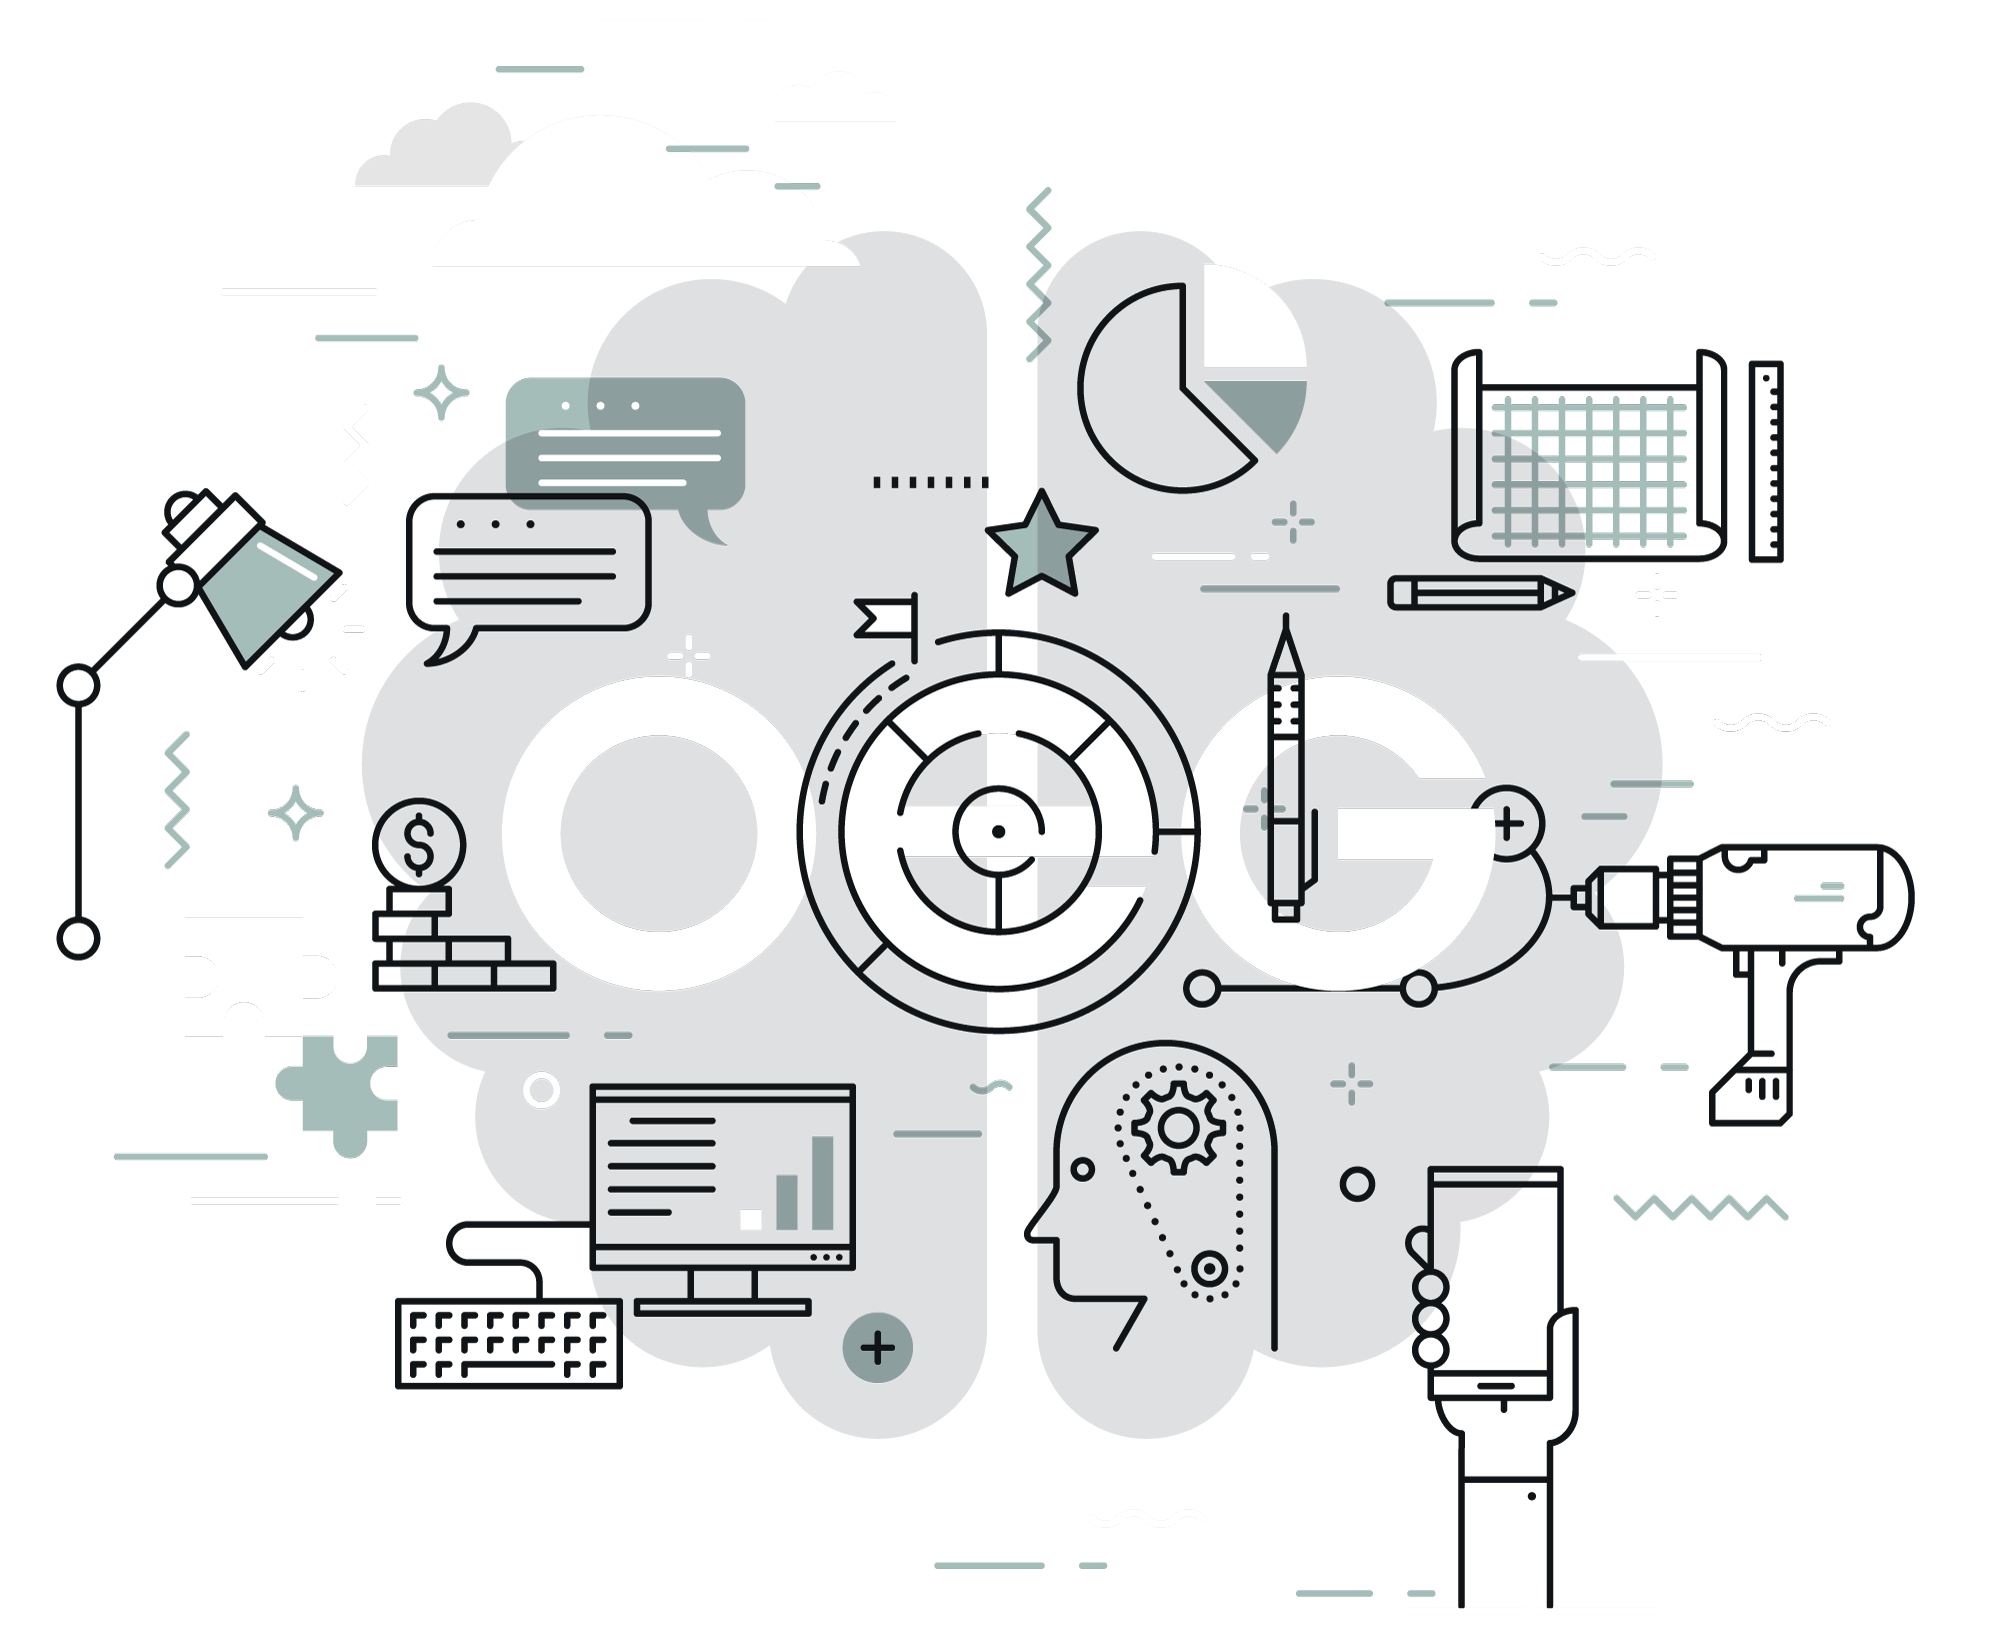 About OEG